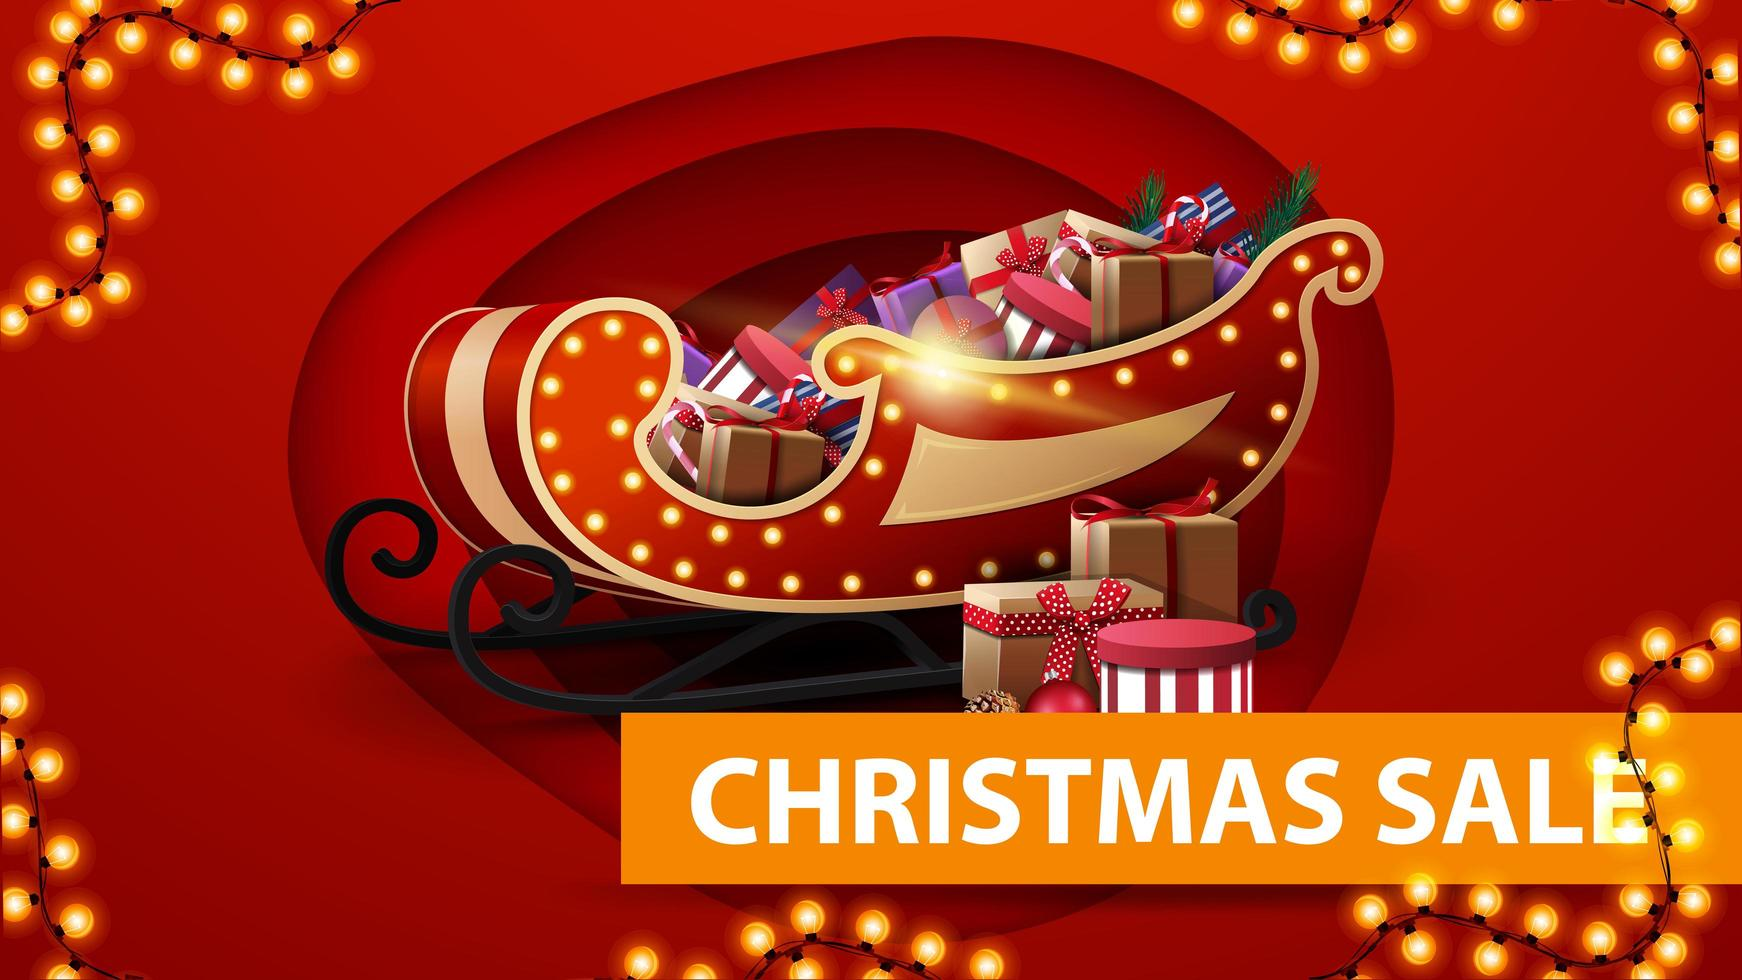 Christmas sale, red discount banner in paper cut style, garland and Santa Sleigh with presents vector